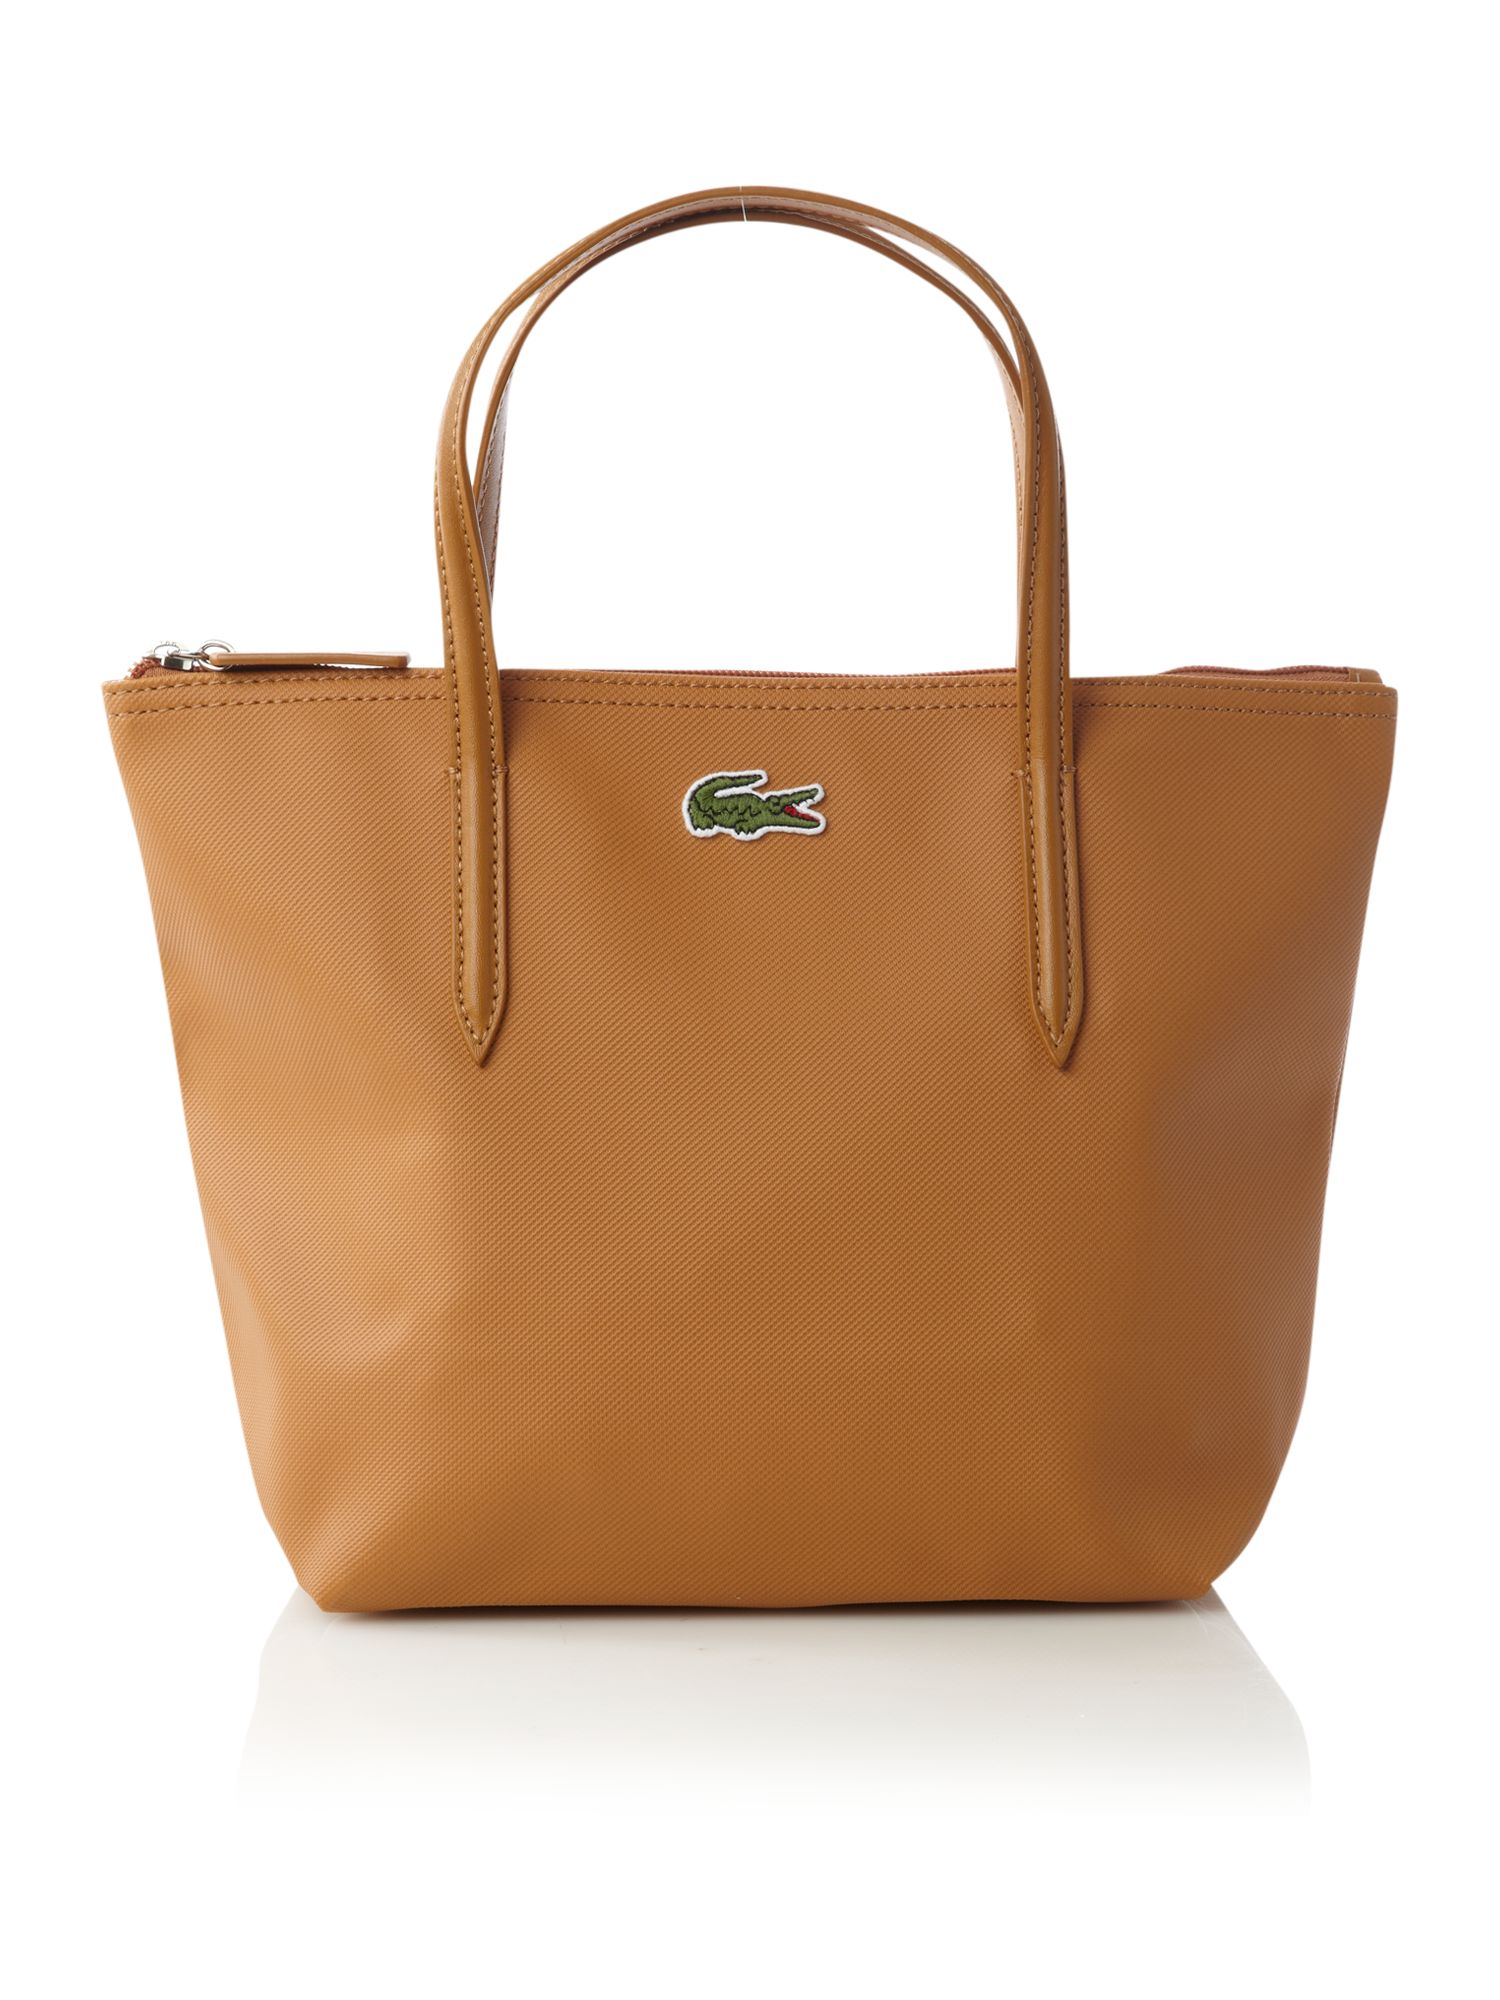 Lacoste Pique Small Tote Bag in Brown | Lyst